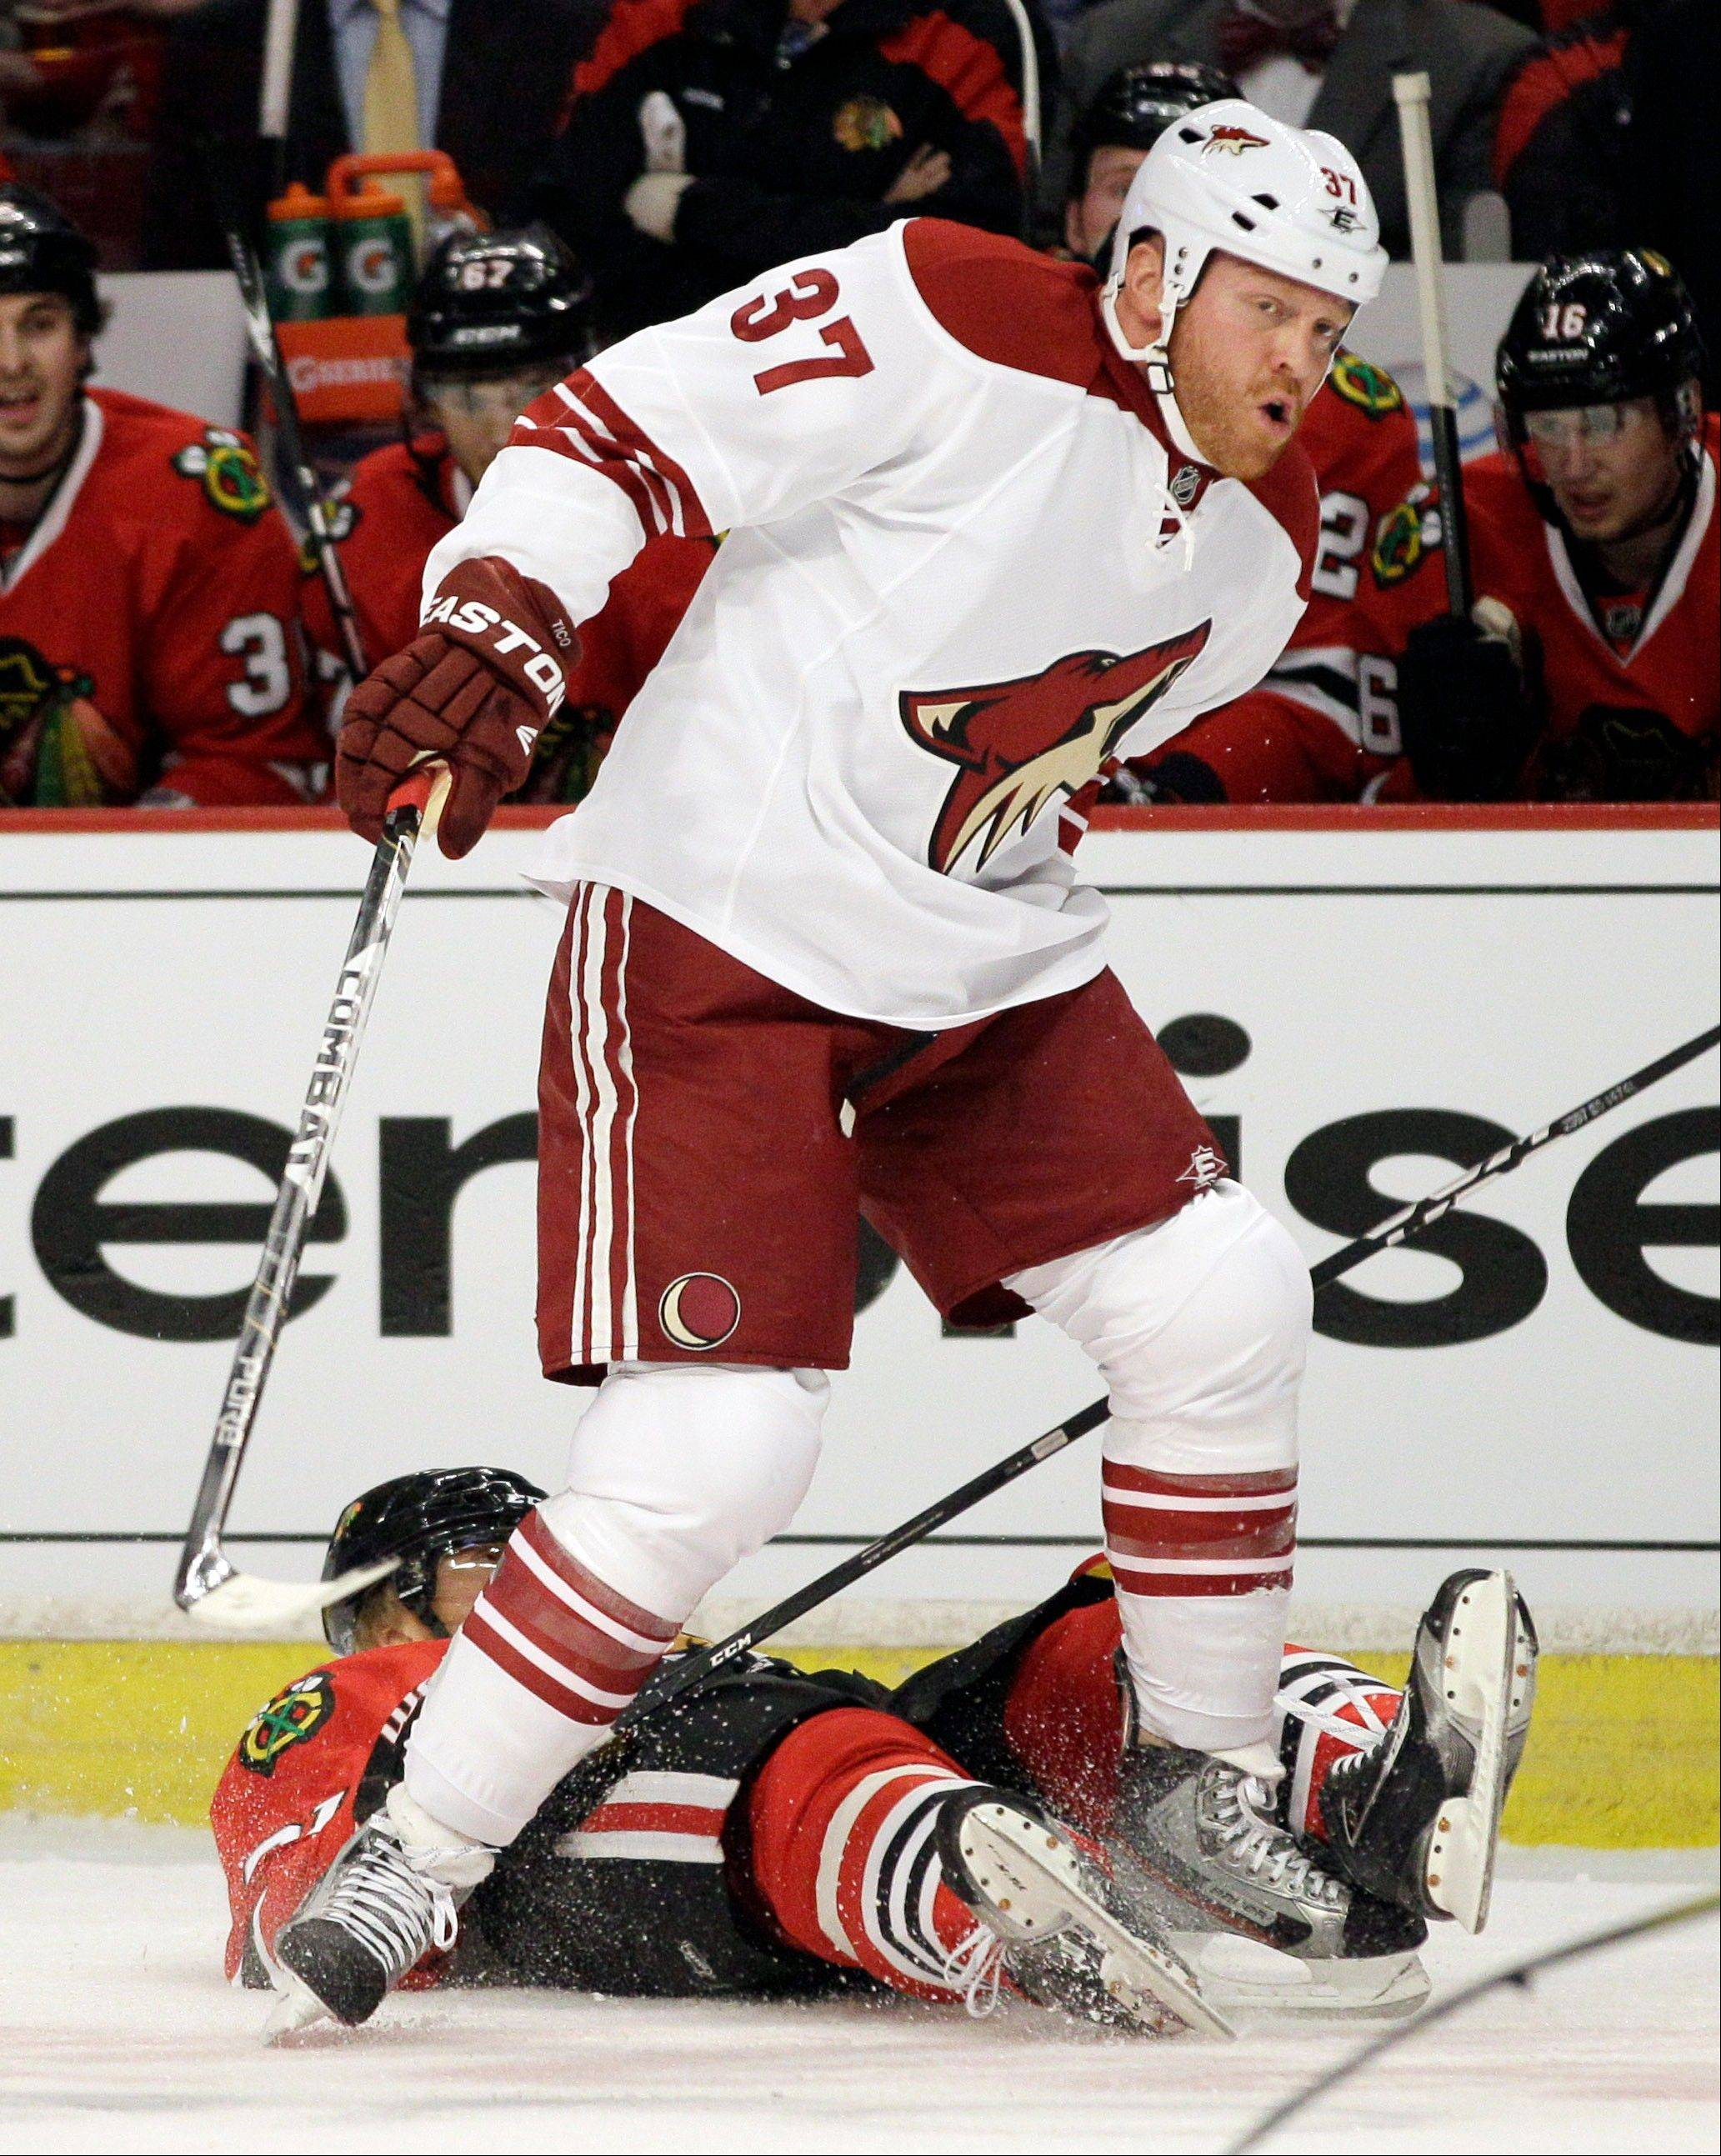 The Blackhawks' Marian Hossa falls down after hit from the Phoenix Coyotes' Raffi Torres Tuesday during the first period.